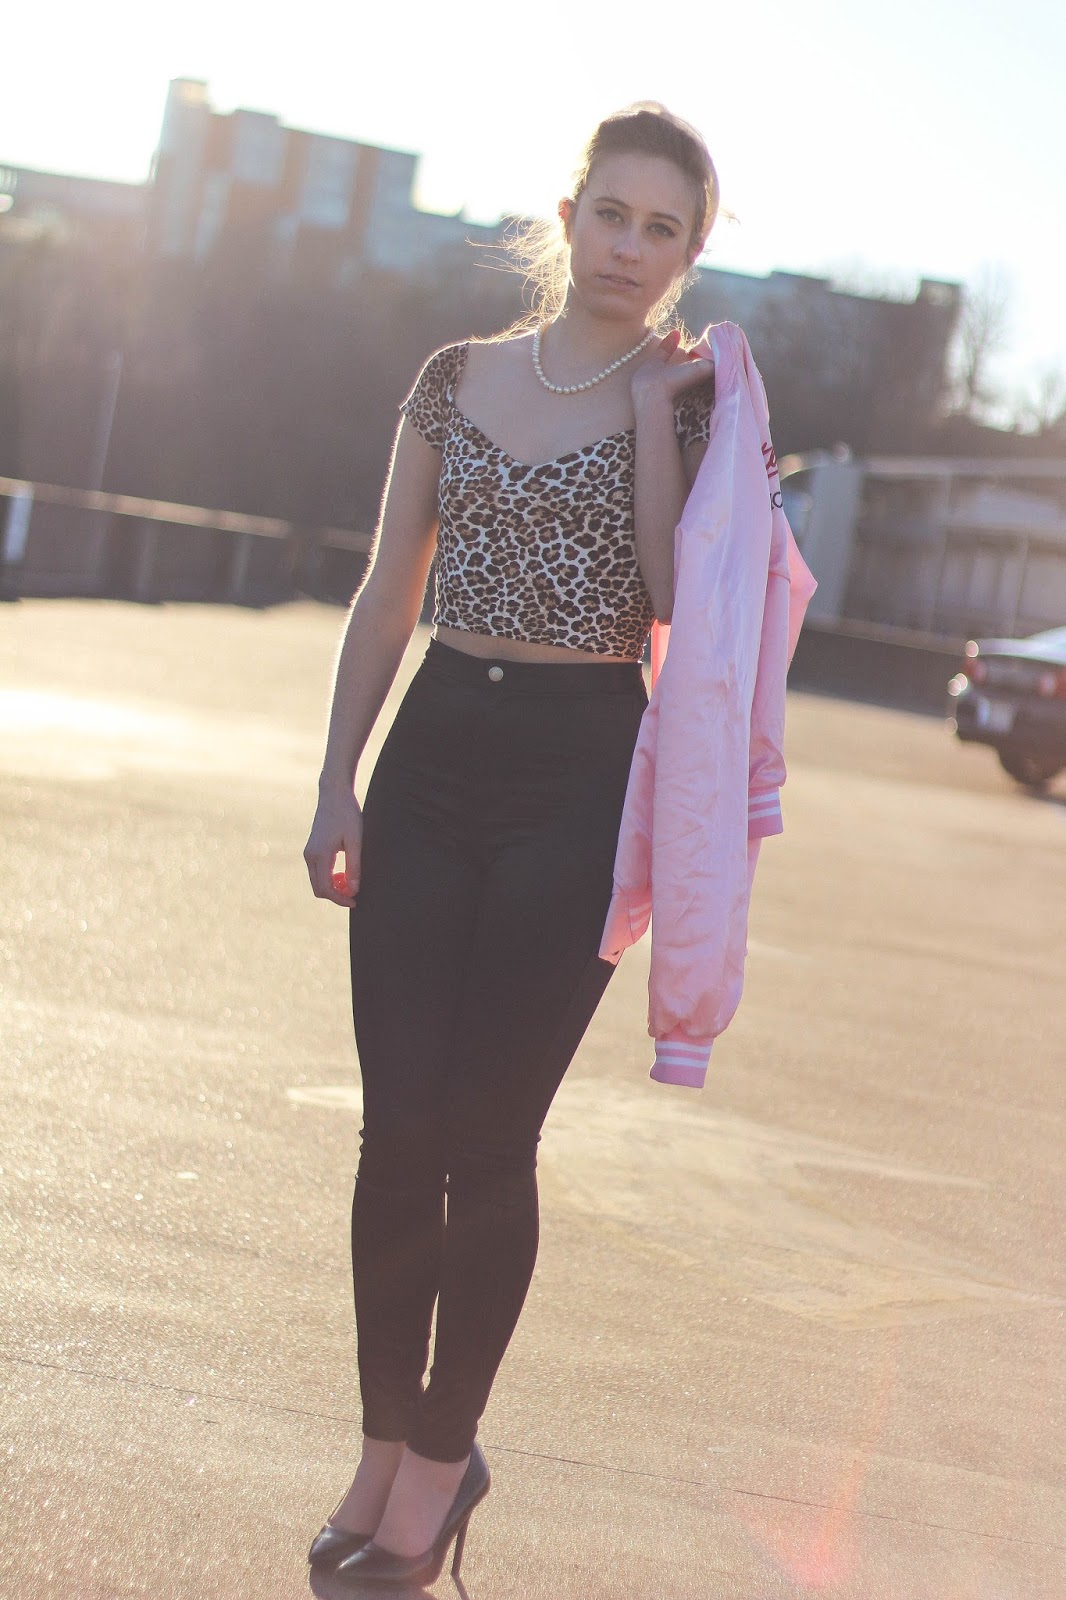 50's, Retro, Outfit, Pink Ladies, Disco Pants, Classy, Fashion Blogger, Personal Style, High Waist Pants, Rockabilly, Film, Movies, Vintage, Grease, Girly, Femme Fatale, Bardot Top, Cheetah Print, Crop Top, Asos, Forever 21